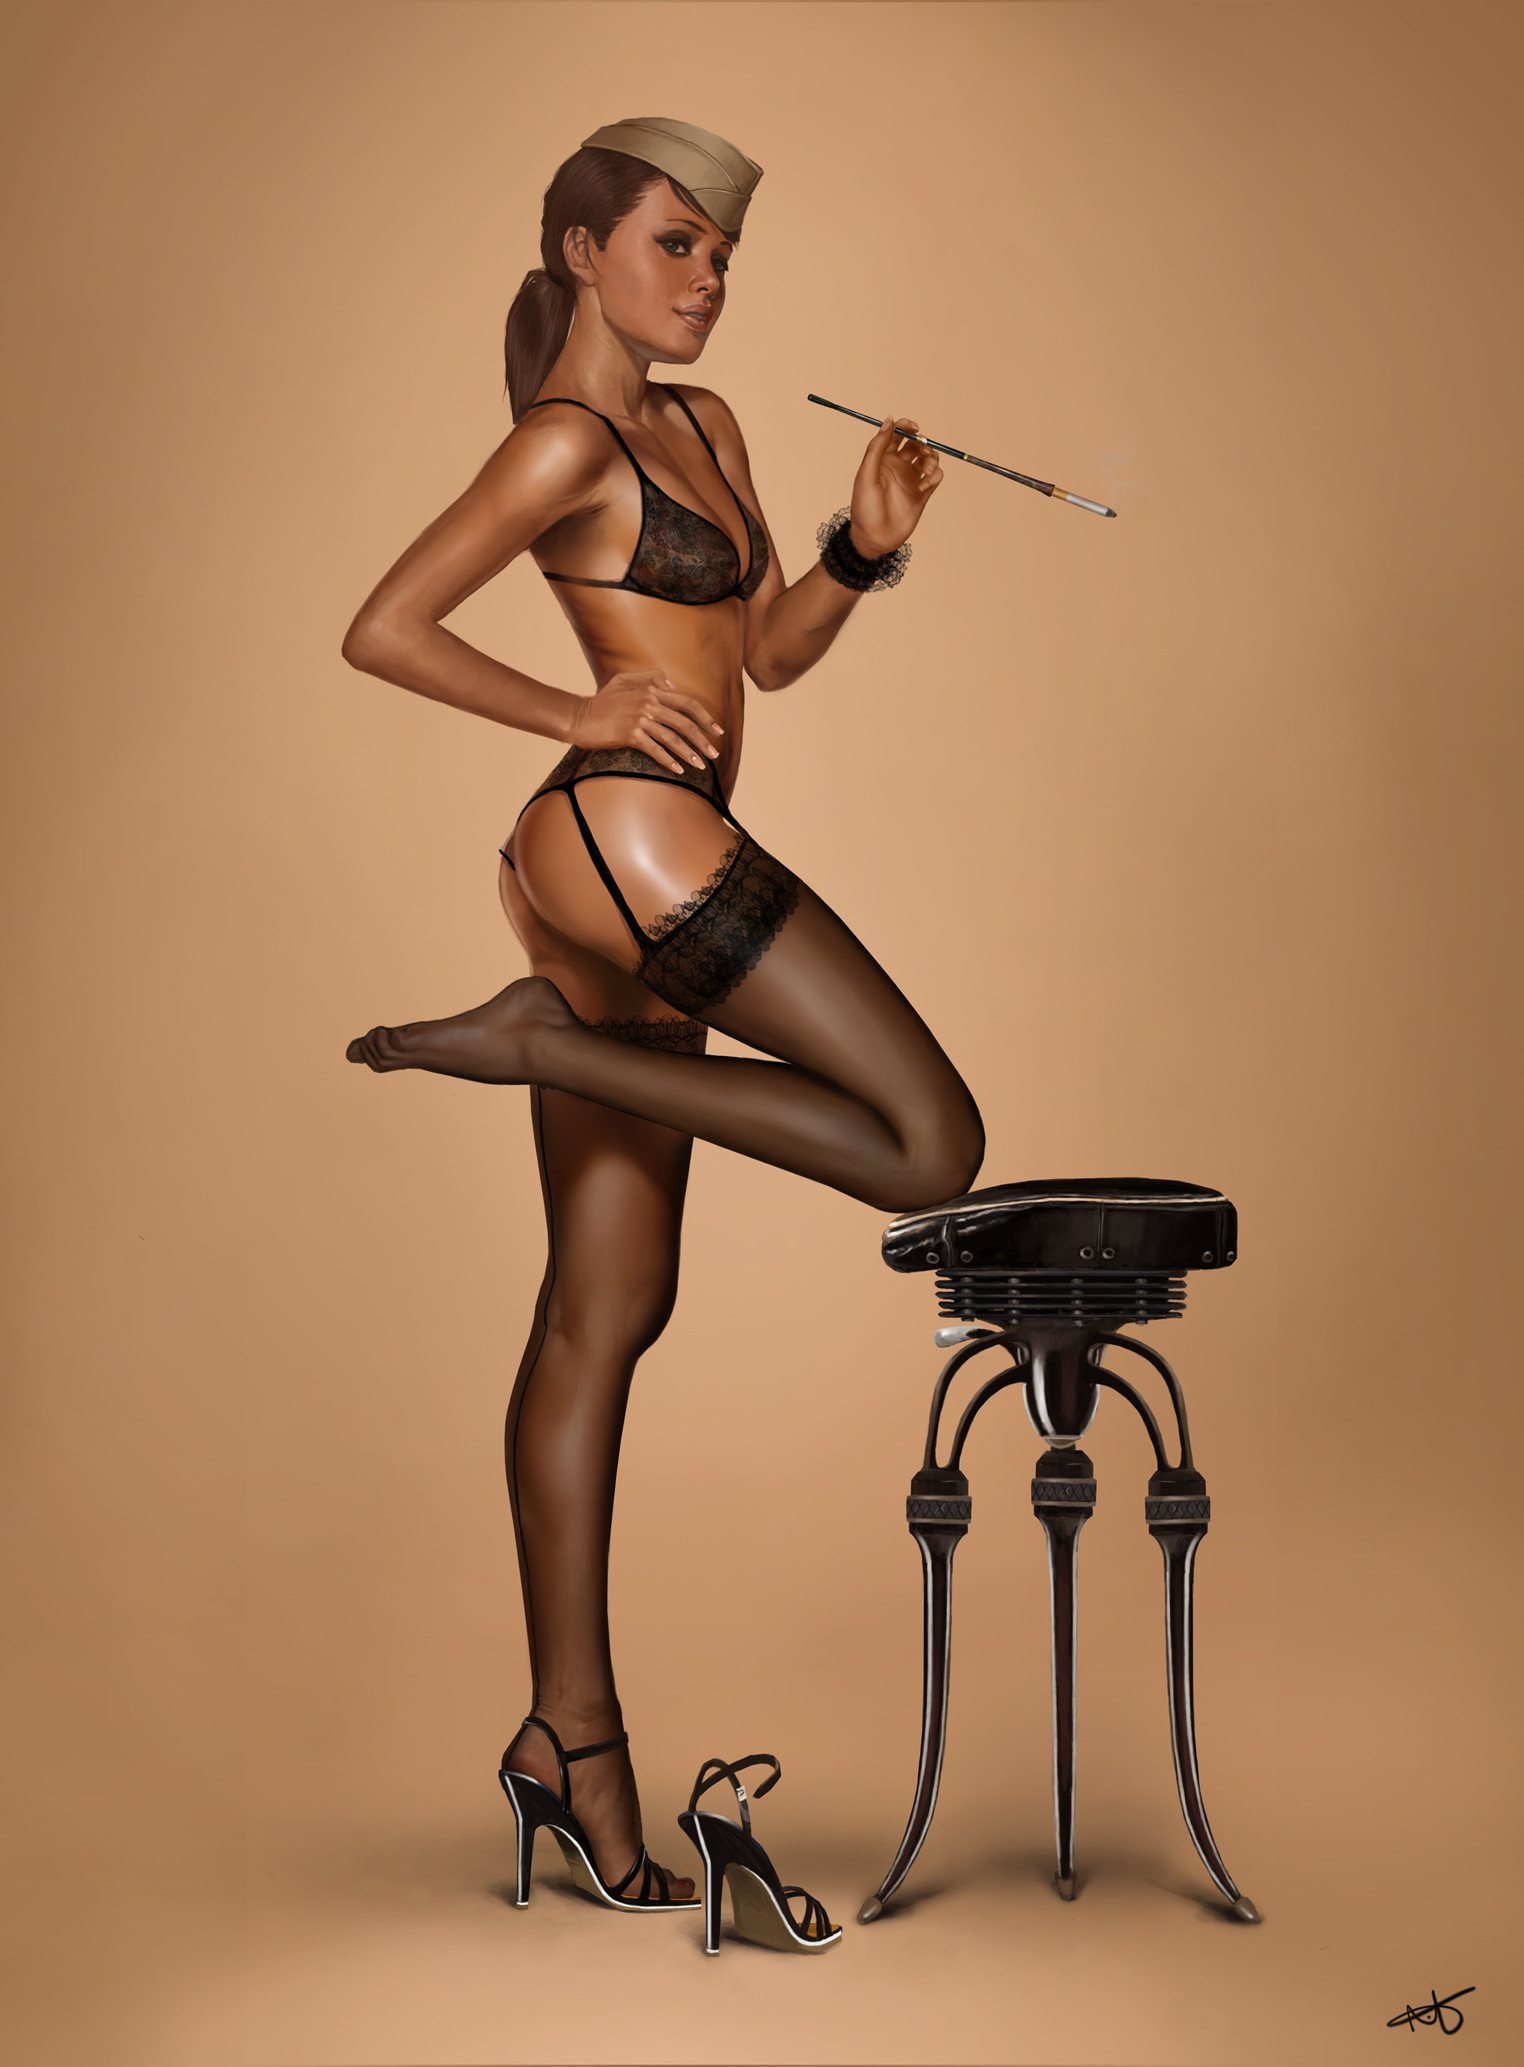 Absolutely Glamorous Digital Pin-up Inspiration   Military pins, Military  and Girls